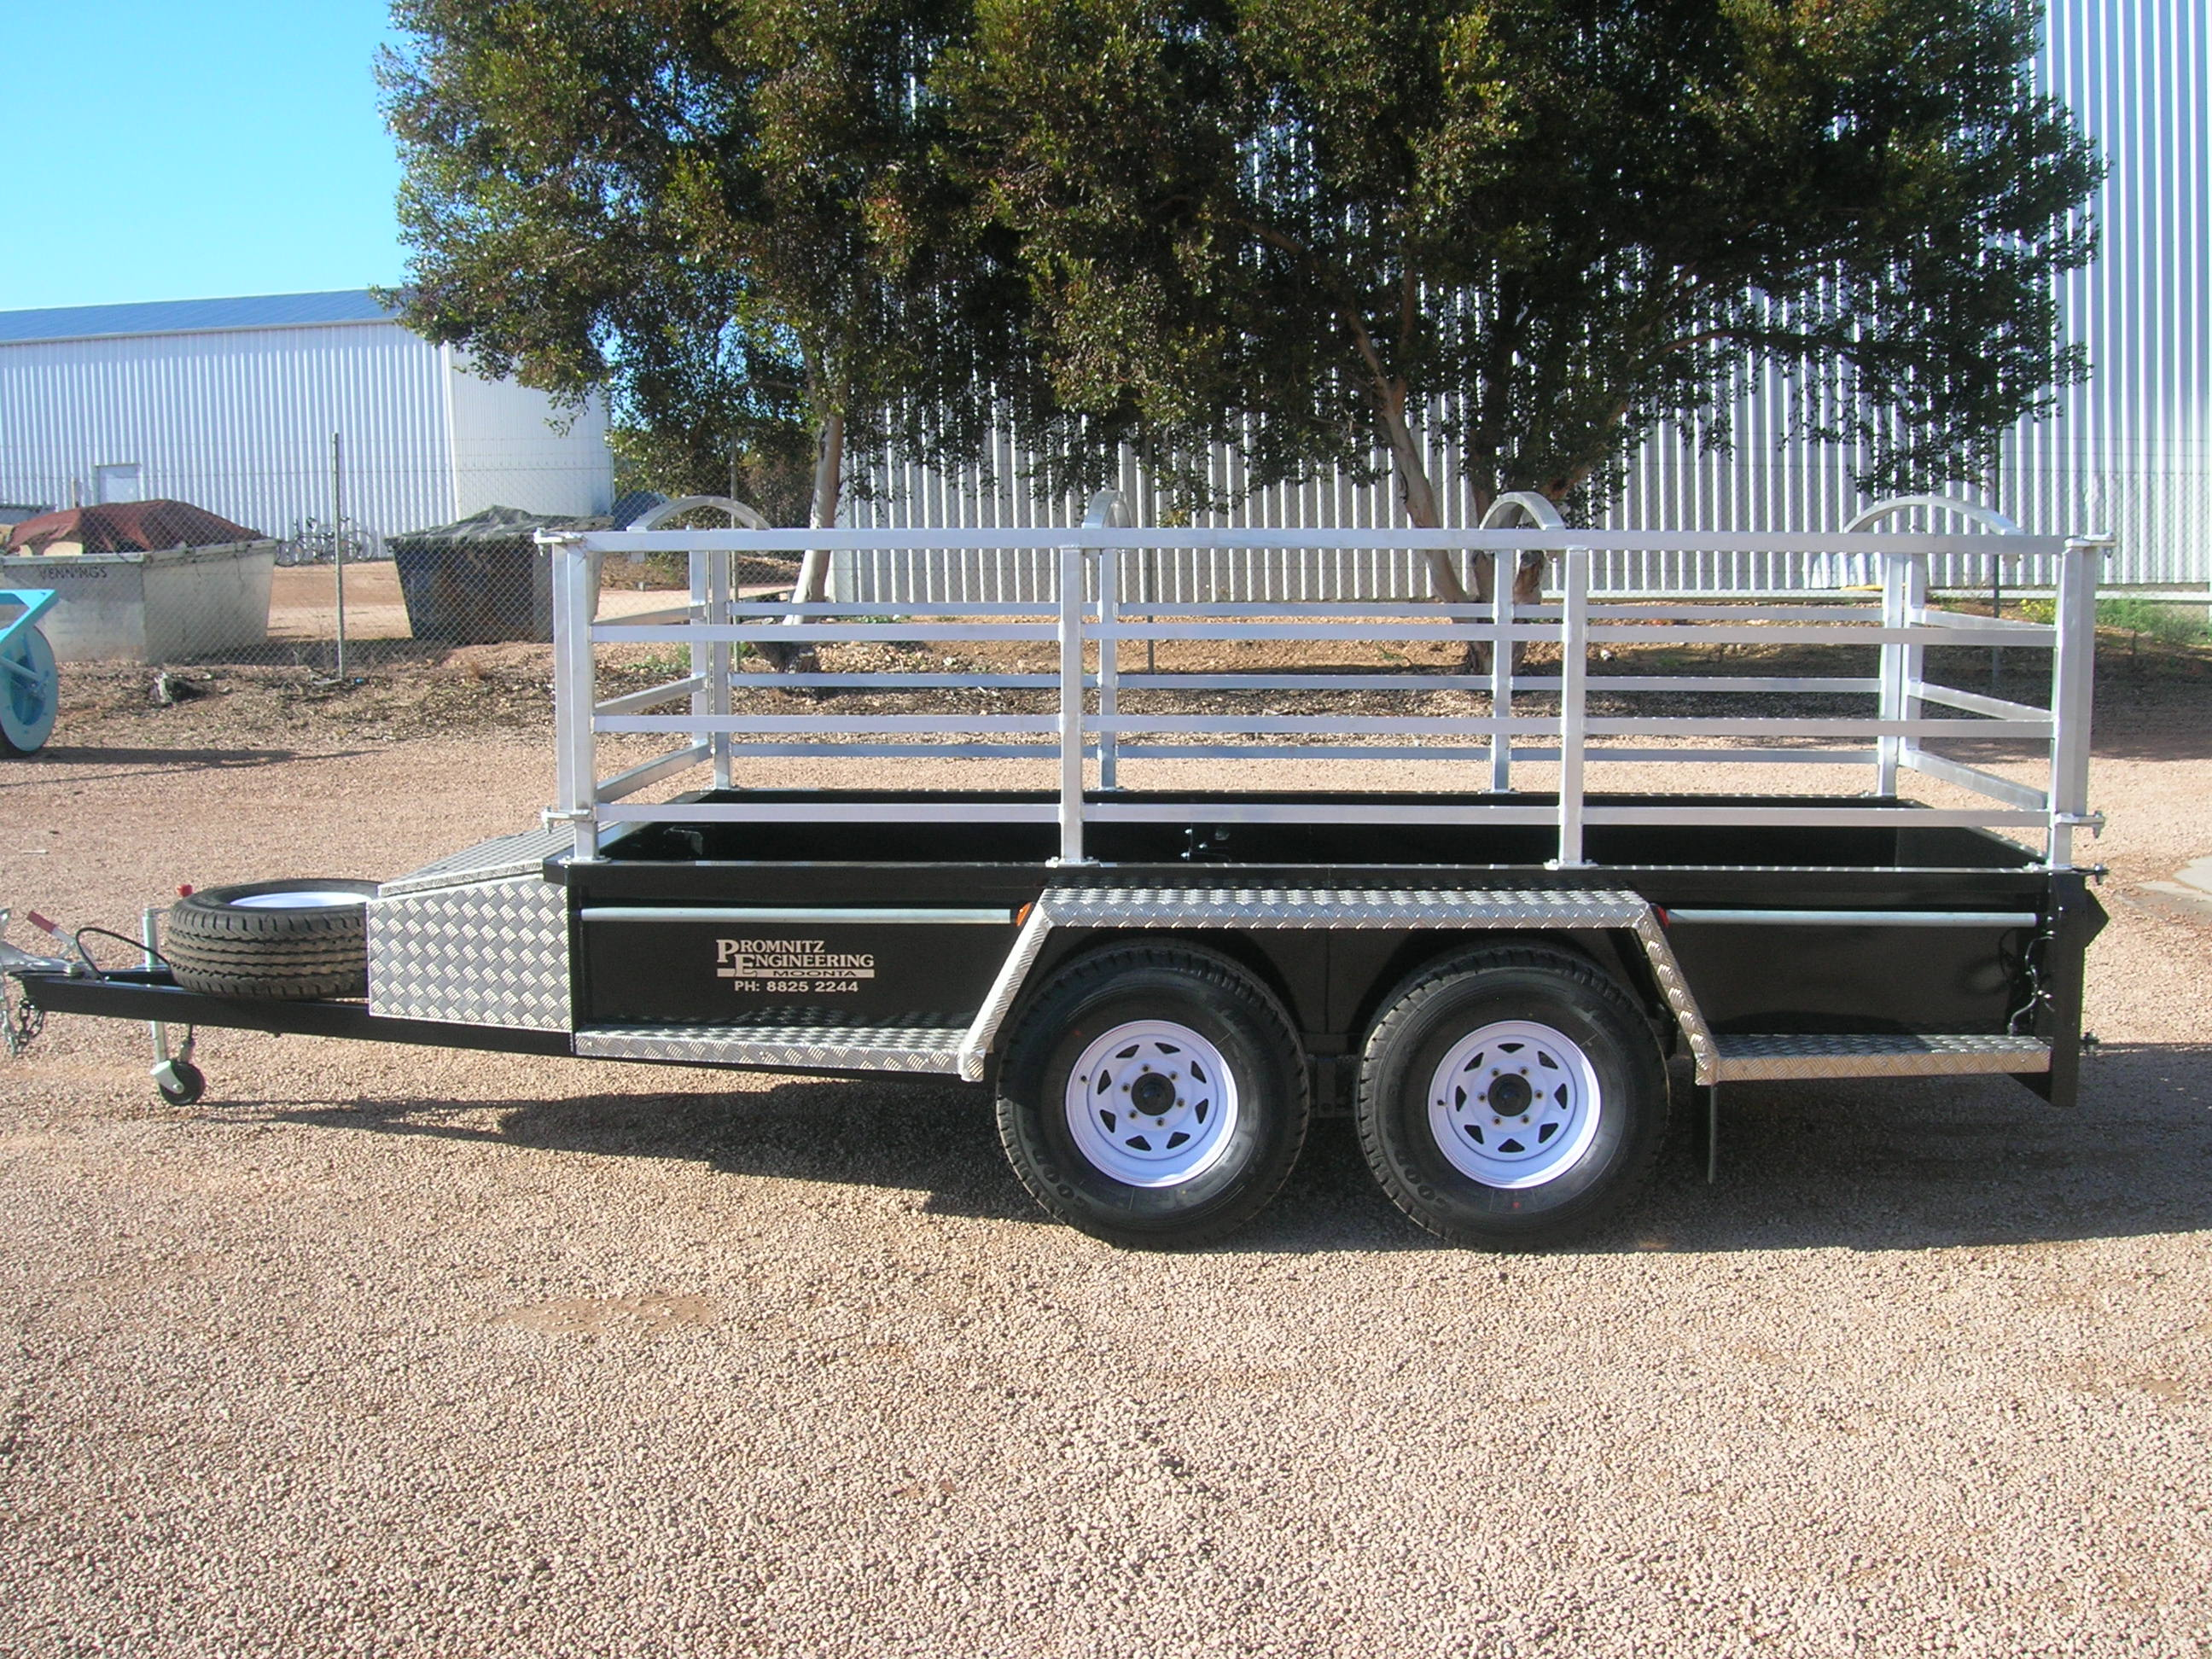 Extension Side for Trailer